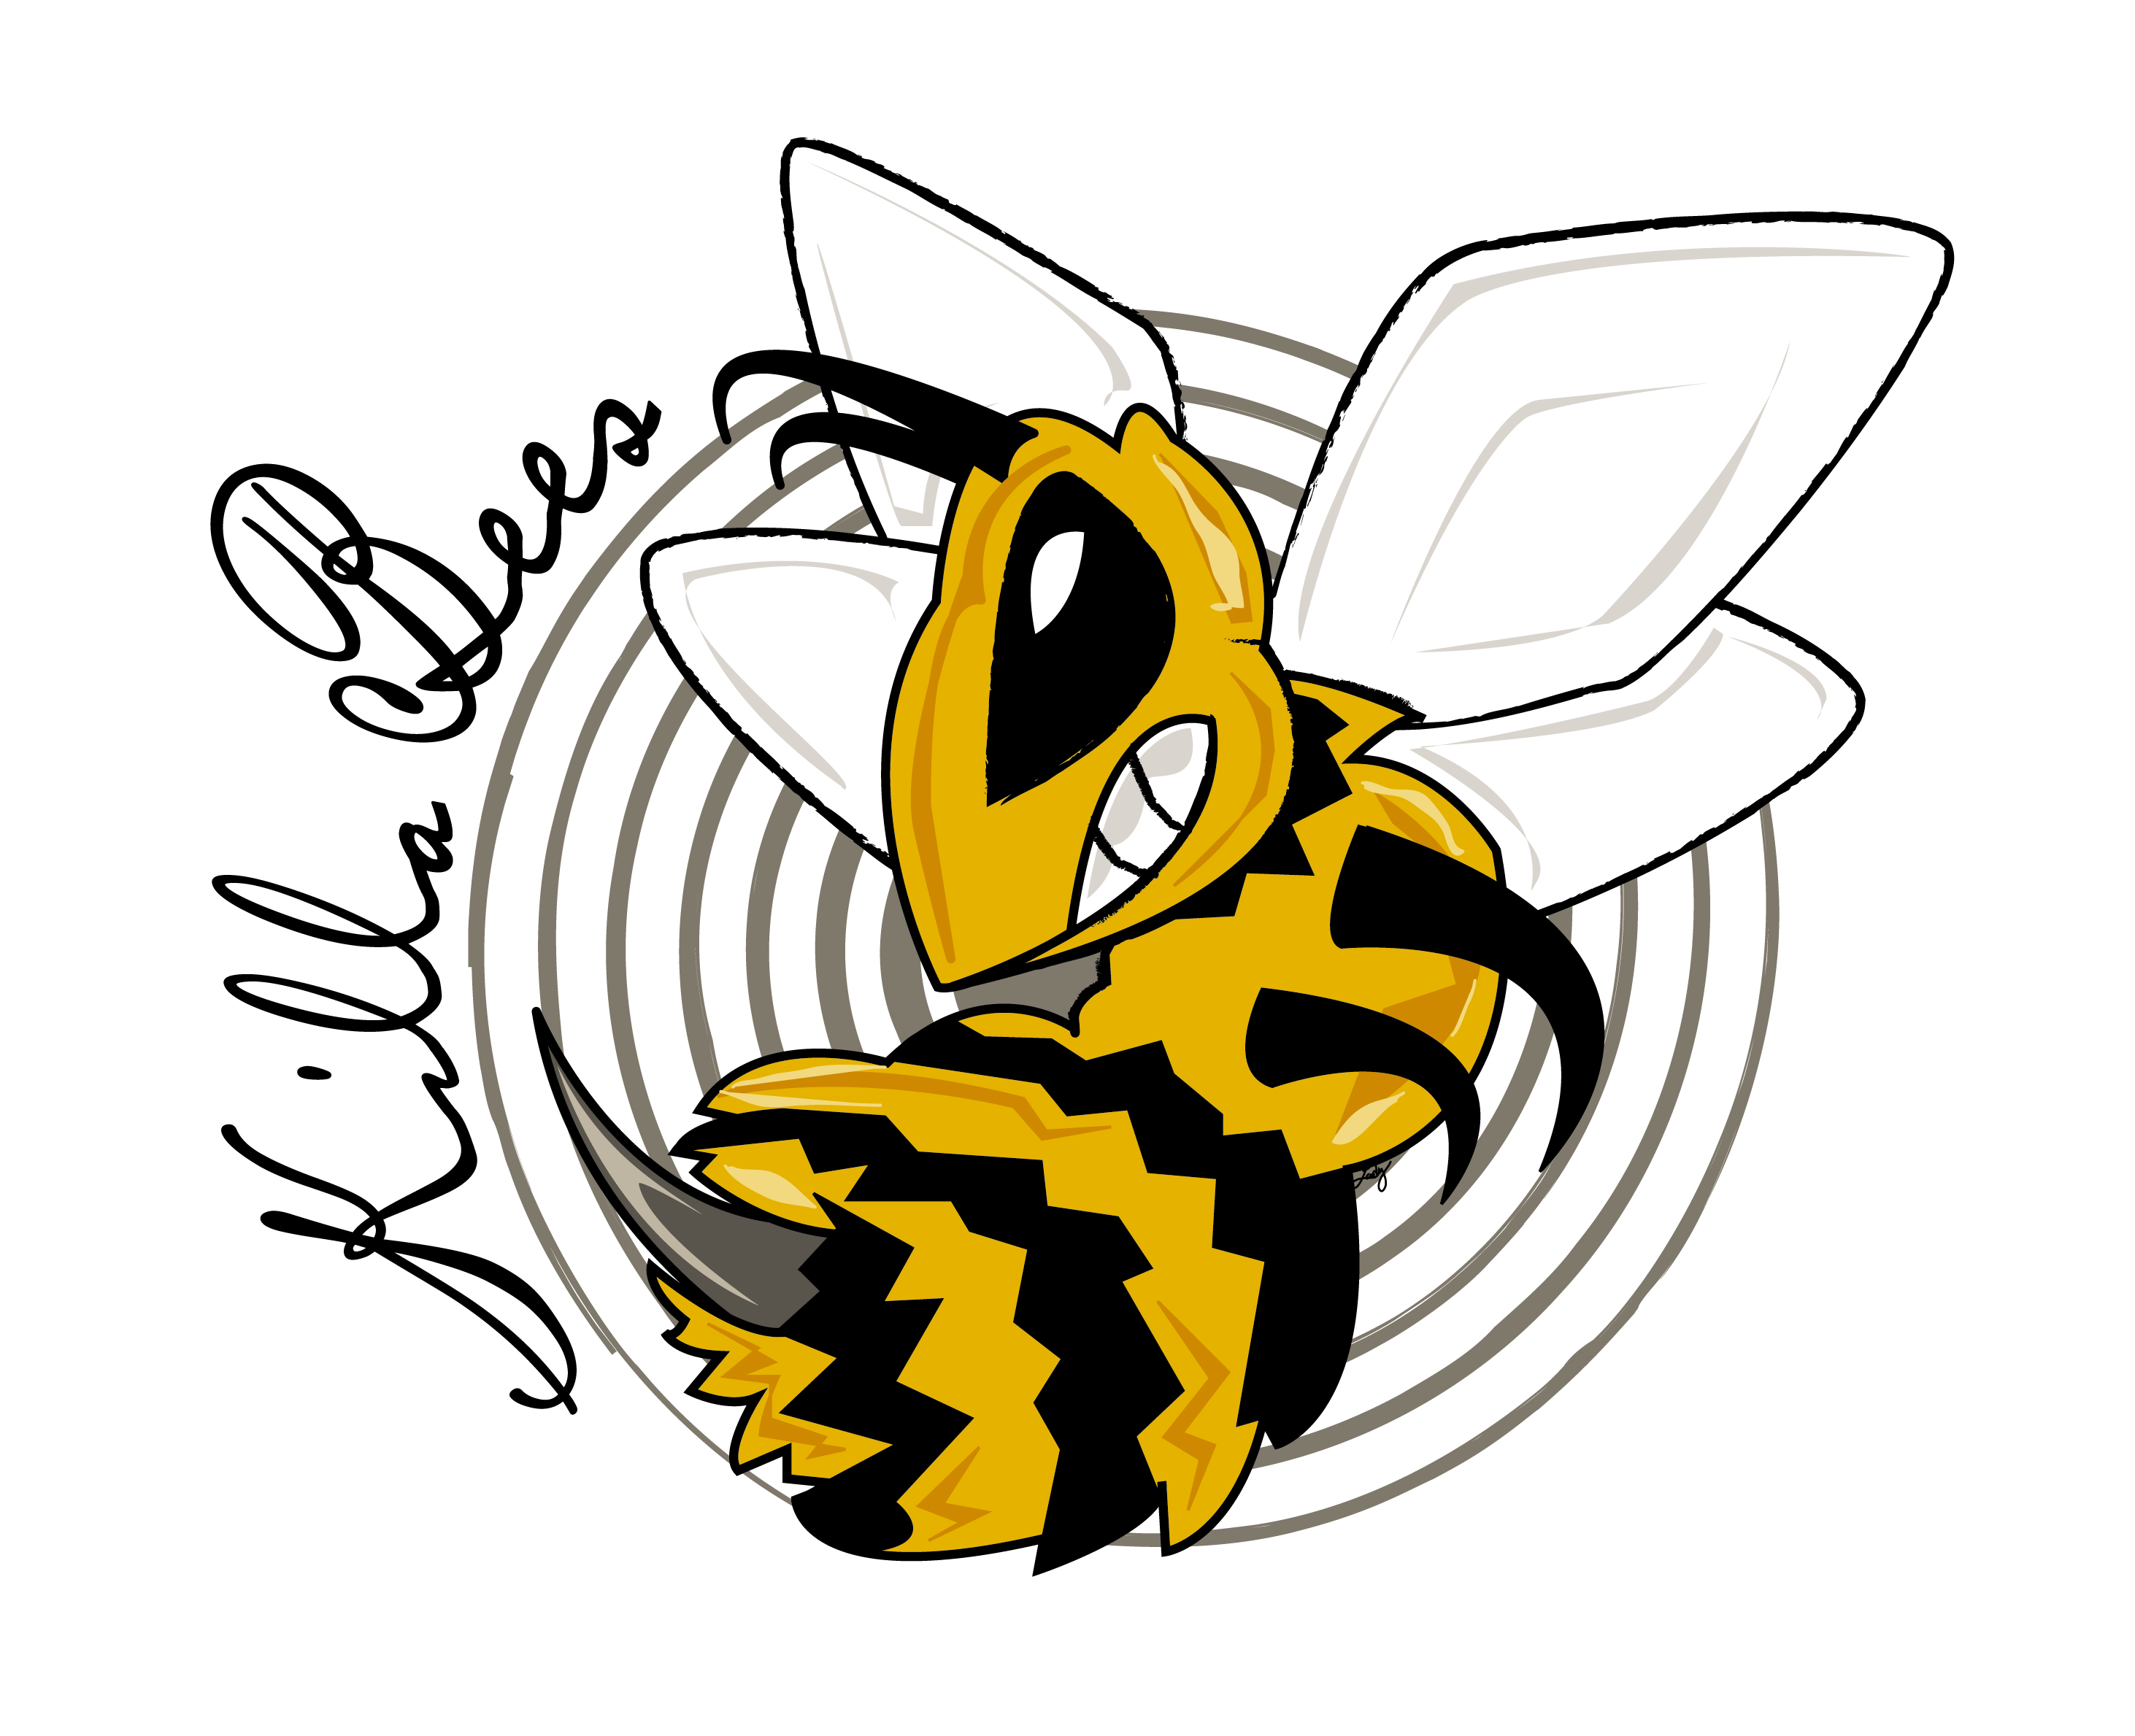 honey bees drones with Killer Bee Logo on Honey Bee Anatomy furthermore Novembeard Inspiration moreover Sciencequestionsfrom5th Graders blogspot in addition Queen Cells Part 2 in addition Basic Honeybee Biology.